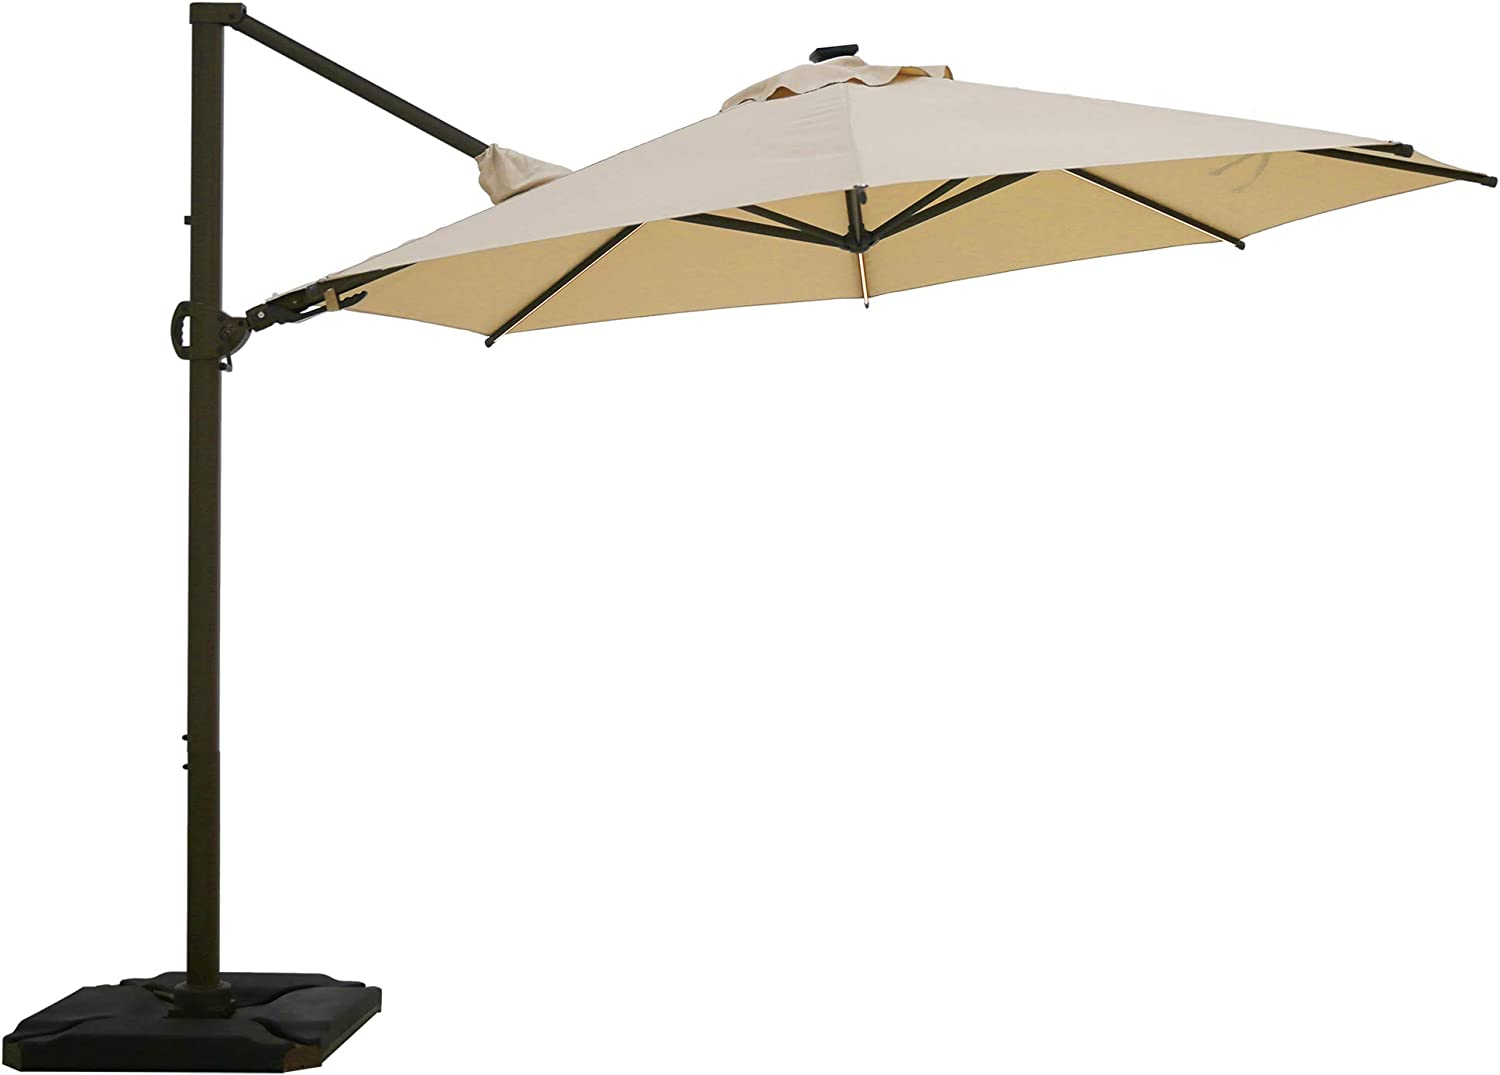 Abba Patio 11.5ft with Light Ranking TOP18 Offset Hanging 360°Rotating Luxury O